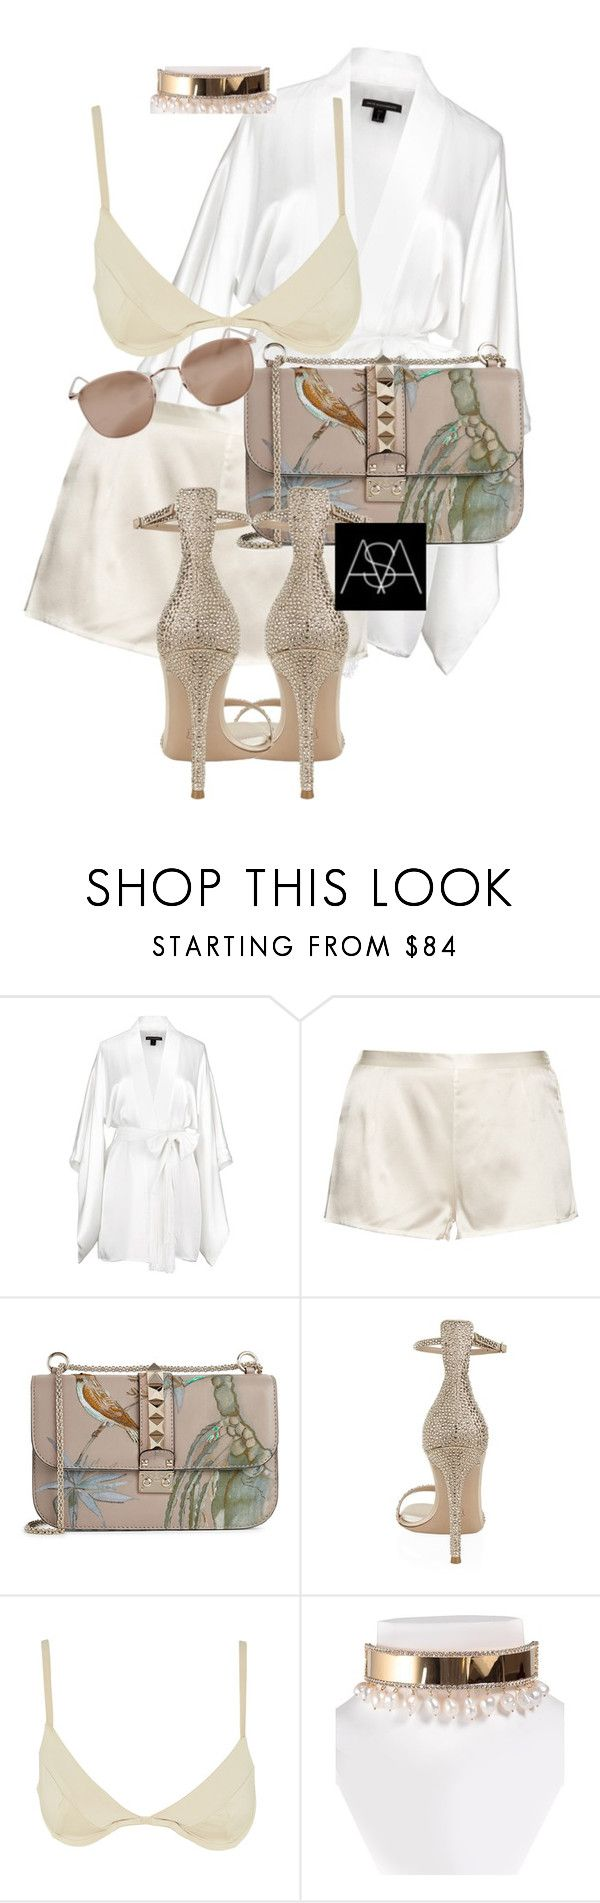 """Untitled #415"" by ana-astylist ❤ liked on Polyvore featuring Kiki de Montparnasse, La Perla, Valentino, Gianvito Rossi, Shourouk and Linda Farrow"